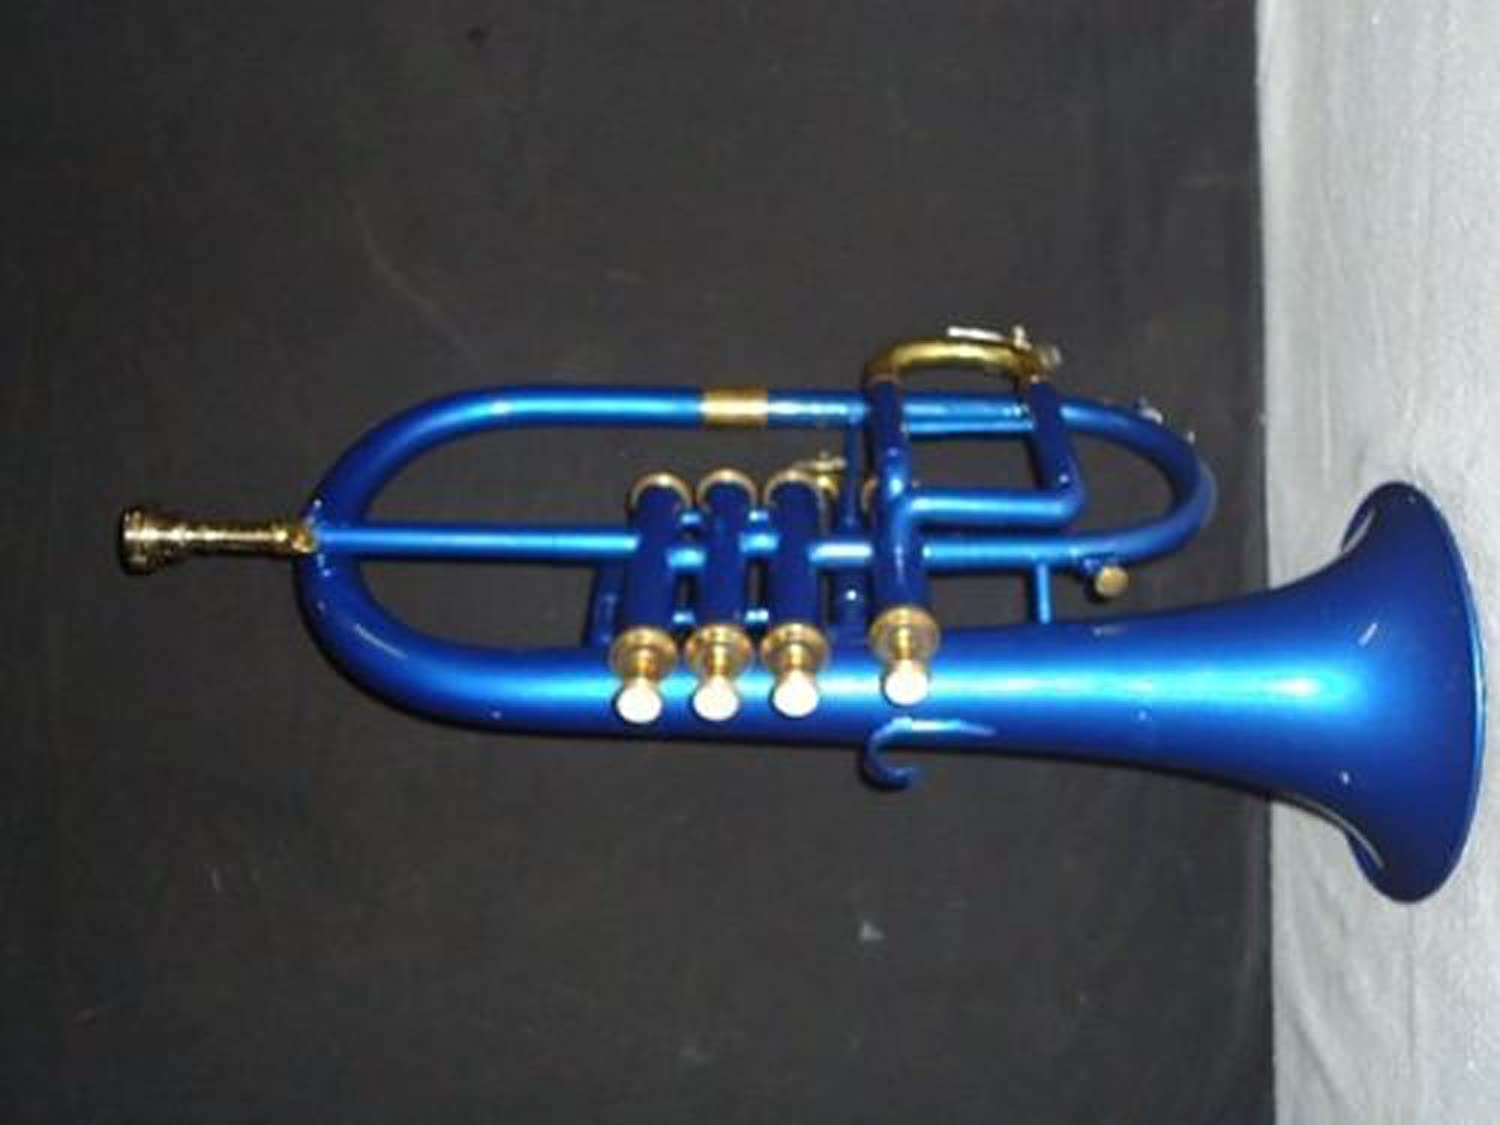 Bb Low Pitch Brass Musical Instrument Flugel Horn Brass Made for Intermediate Student with Cushioned Hard case